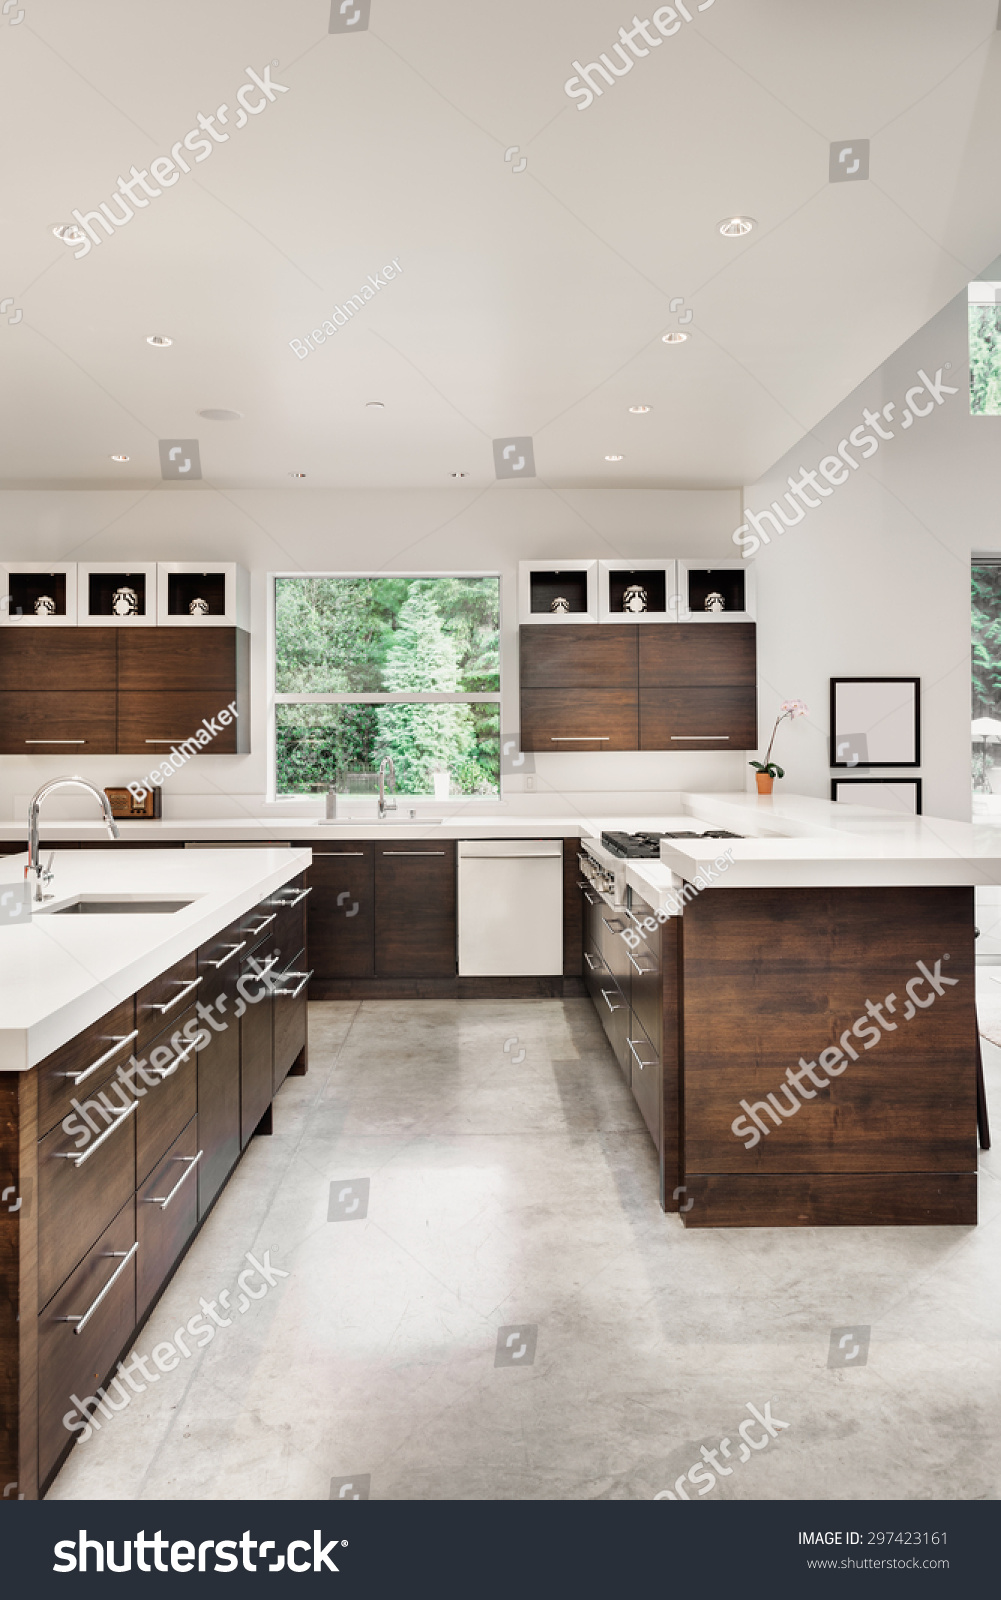 kitchen in luxury home with oak cabinets stock photo   Kitchen In New Luxury Home With Island, Sink, Cabinets ...